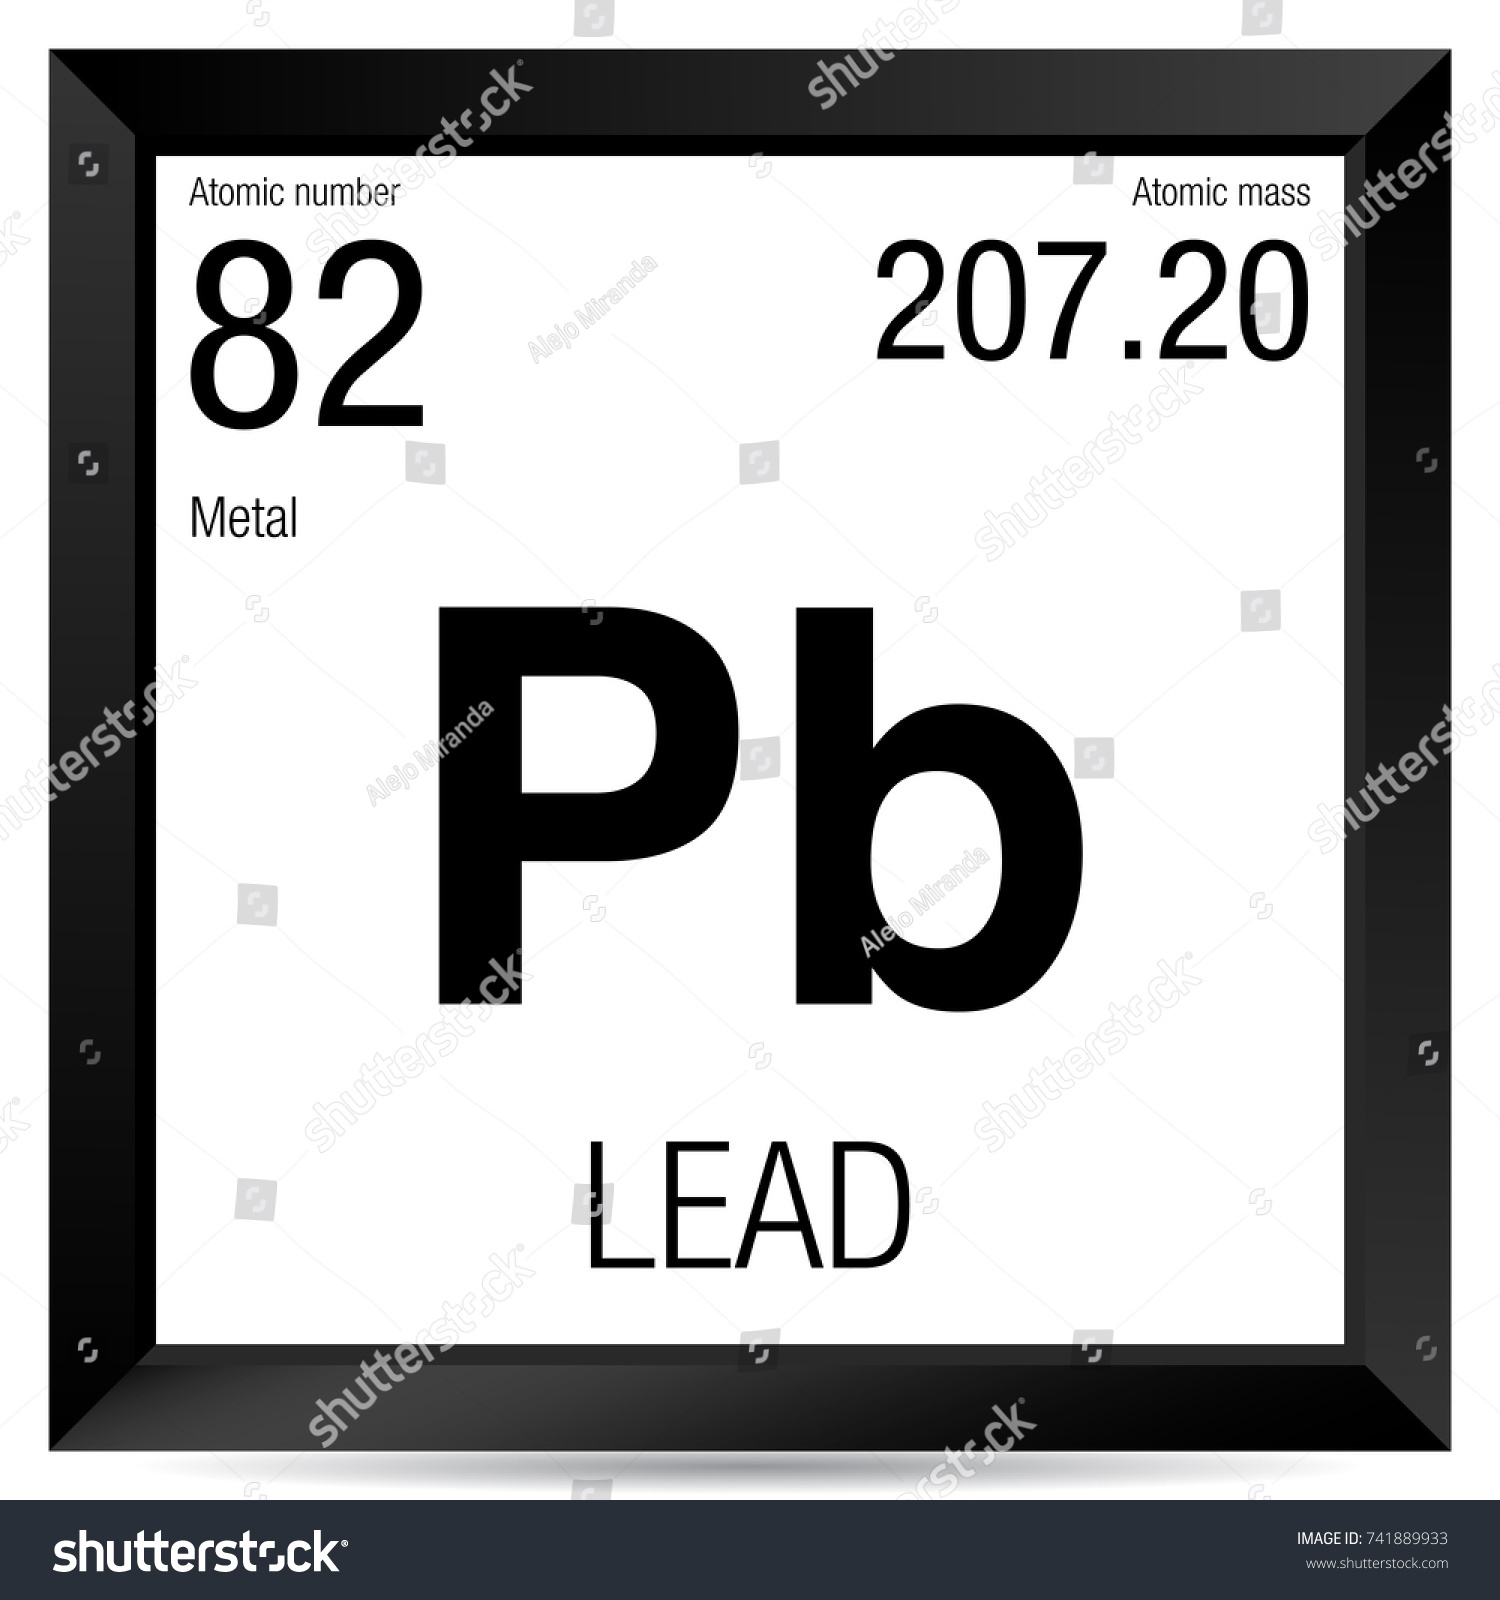 Lead symbol element number 82 periodic stock vector royalty free lead symbol element number 82 of the periodic table of the elements chemistry urtaz Gallery